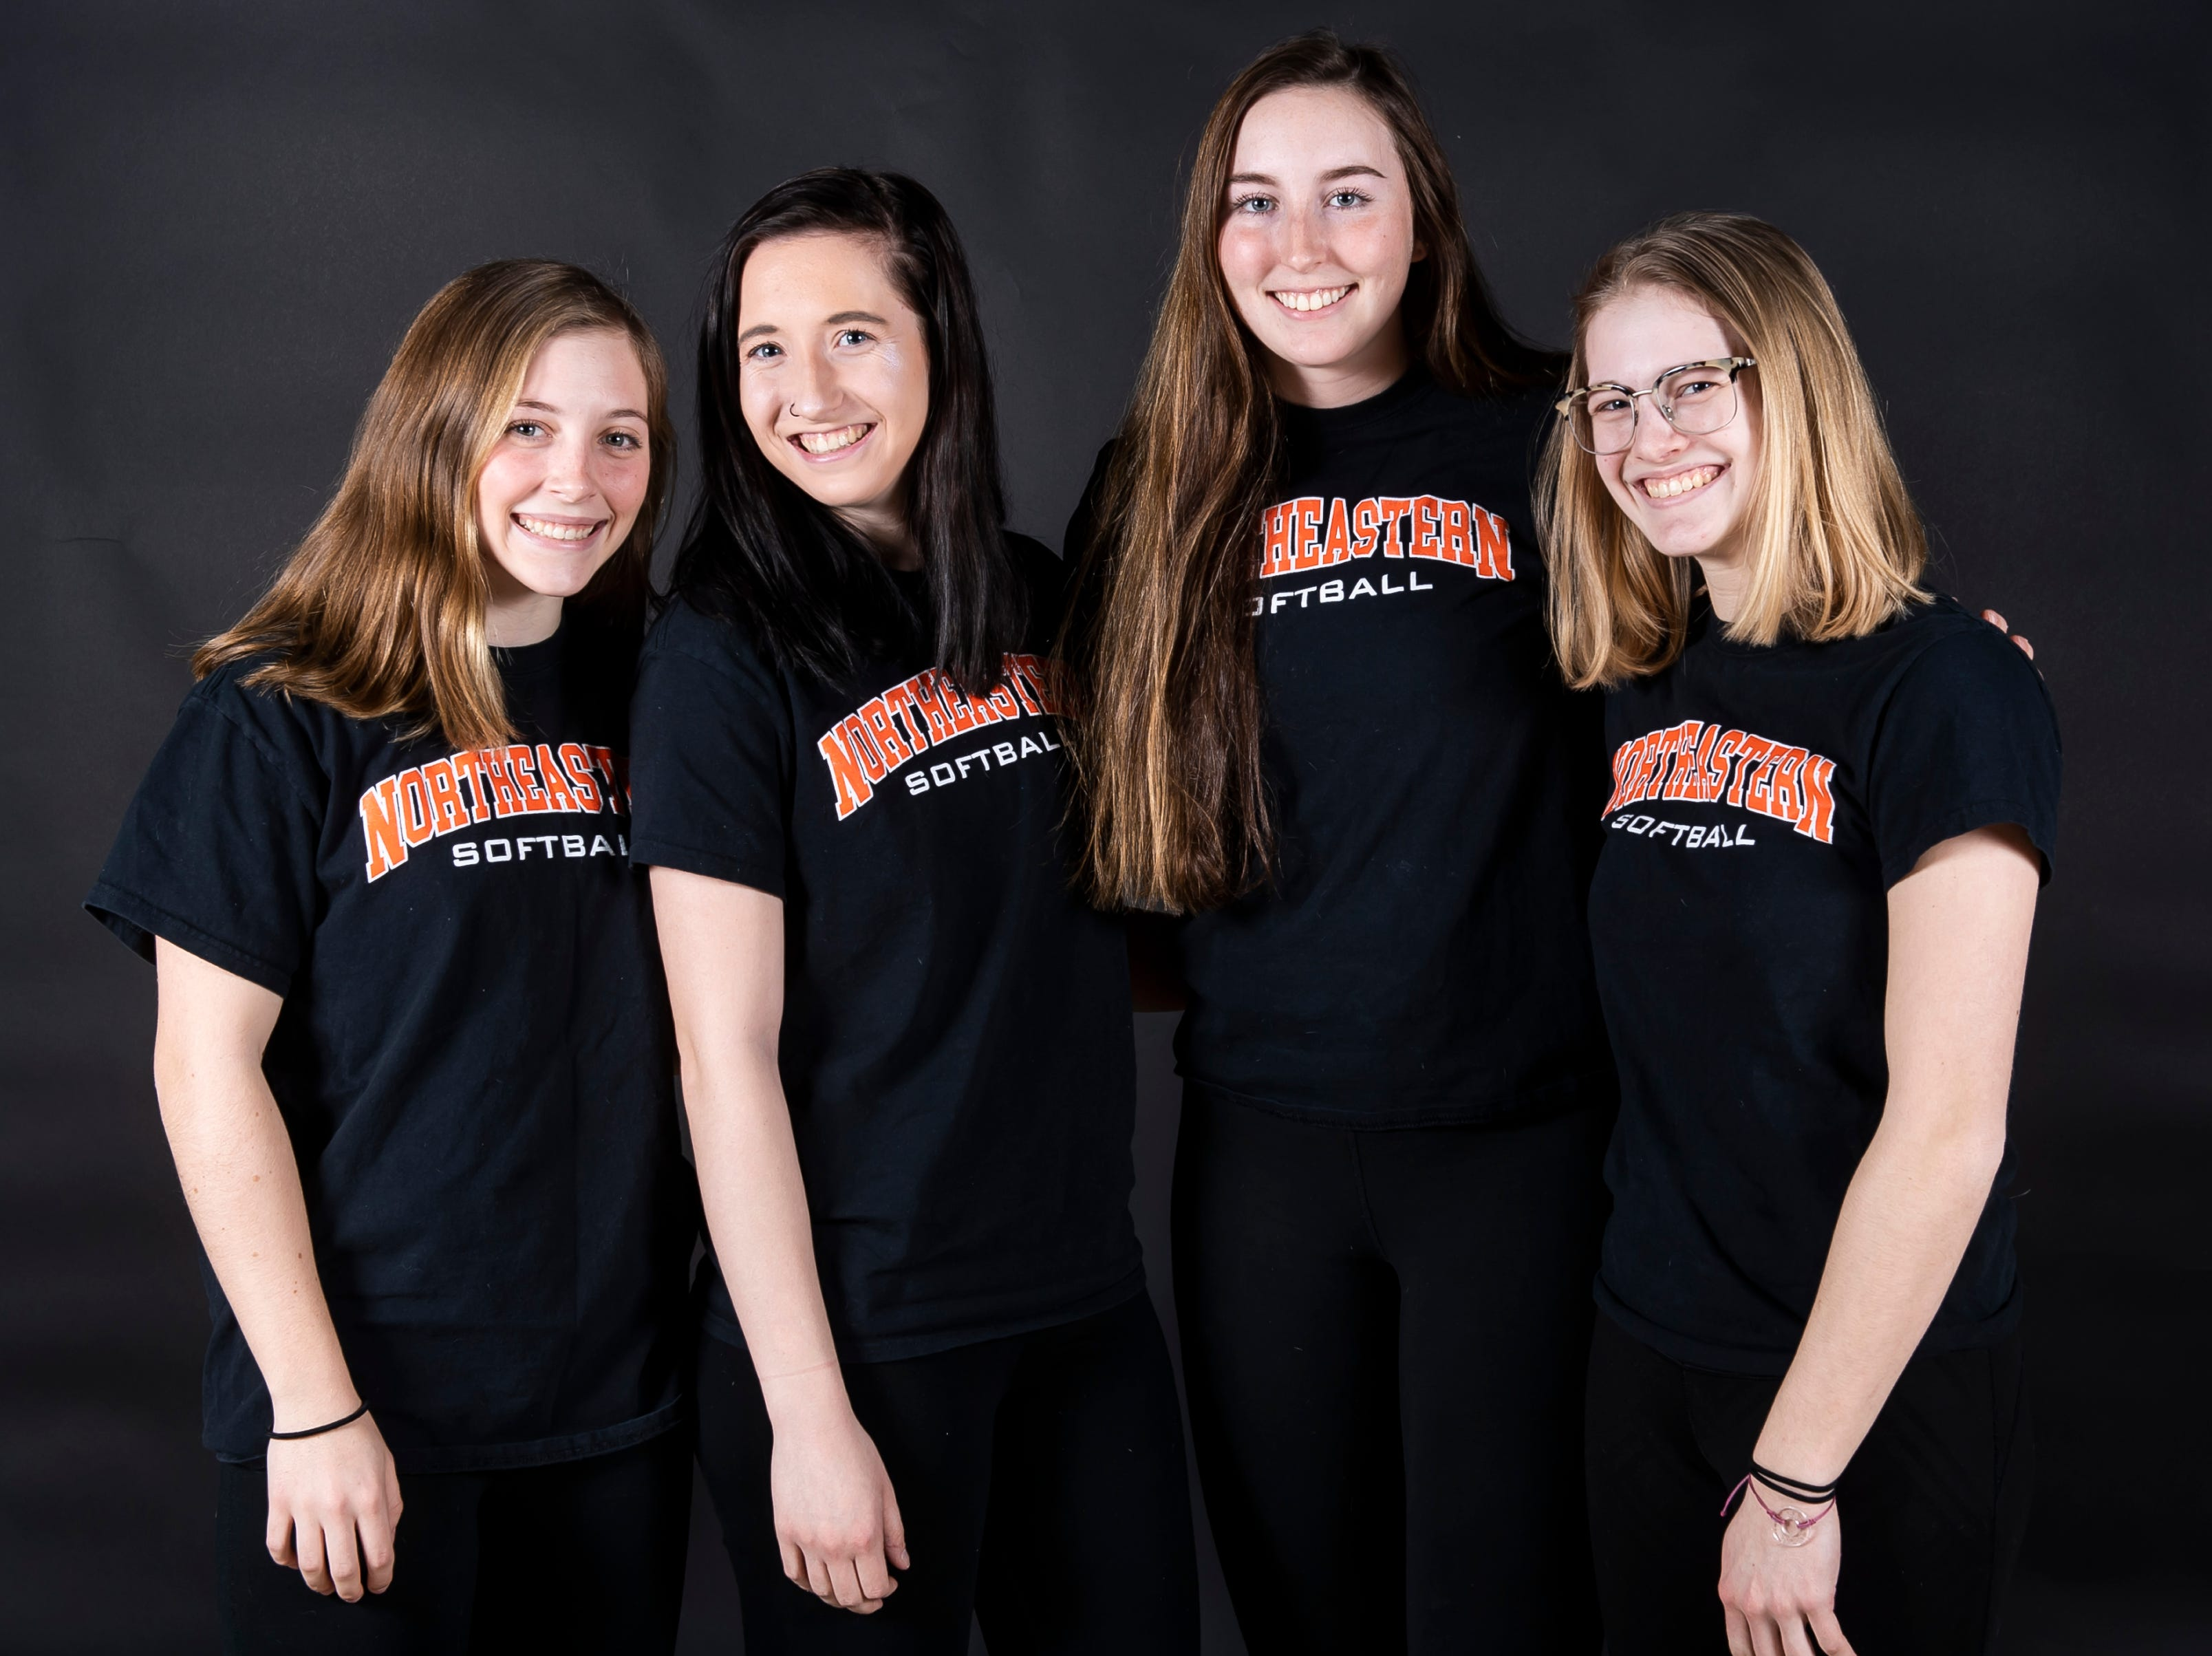 (From left) Northeastern softball players Peyton Eckenrode, Belle Bortner, Haley Updegraff and Madison Wrightstone pose in the GameTimePA photo booth during spring sports media day in York Sunday, March 10, 2019.